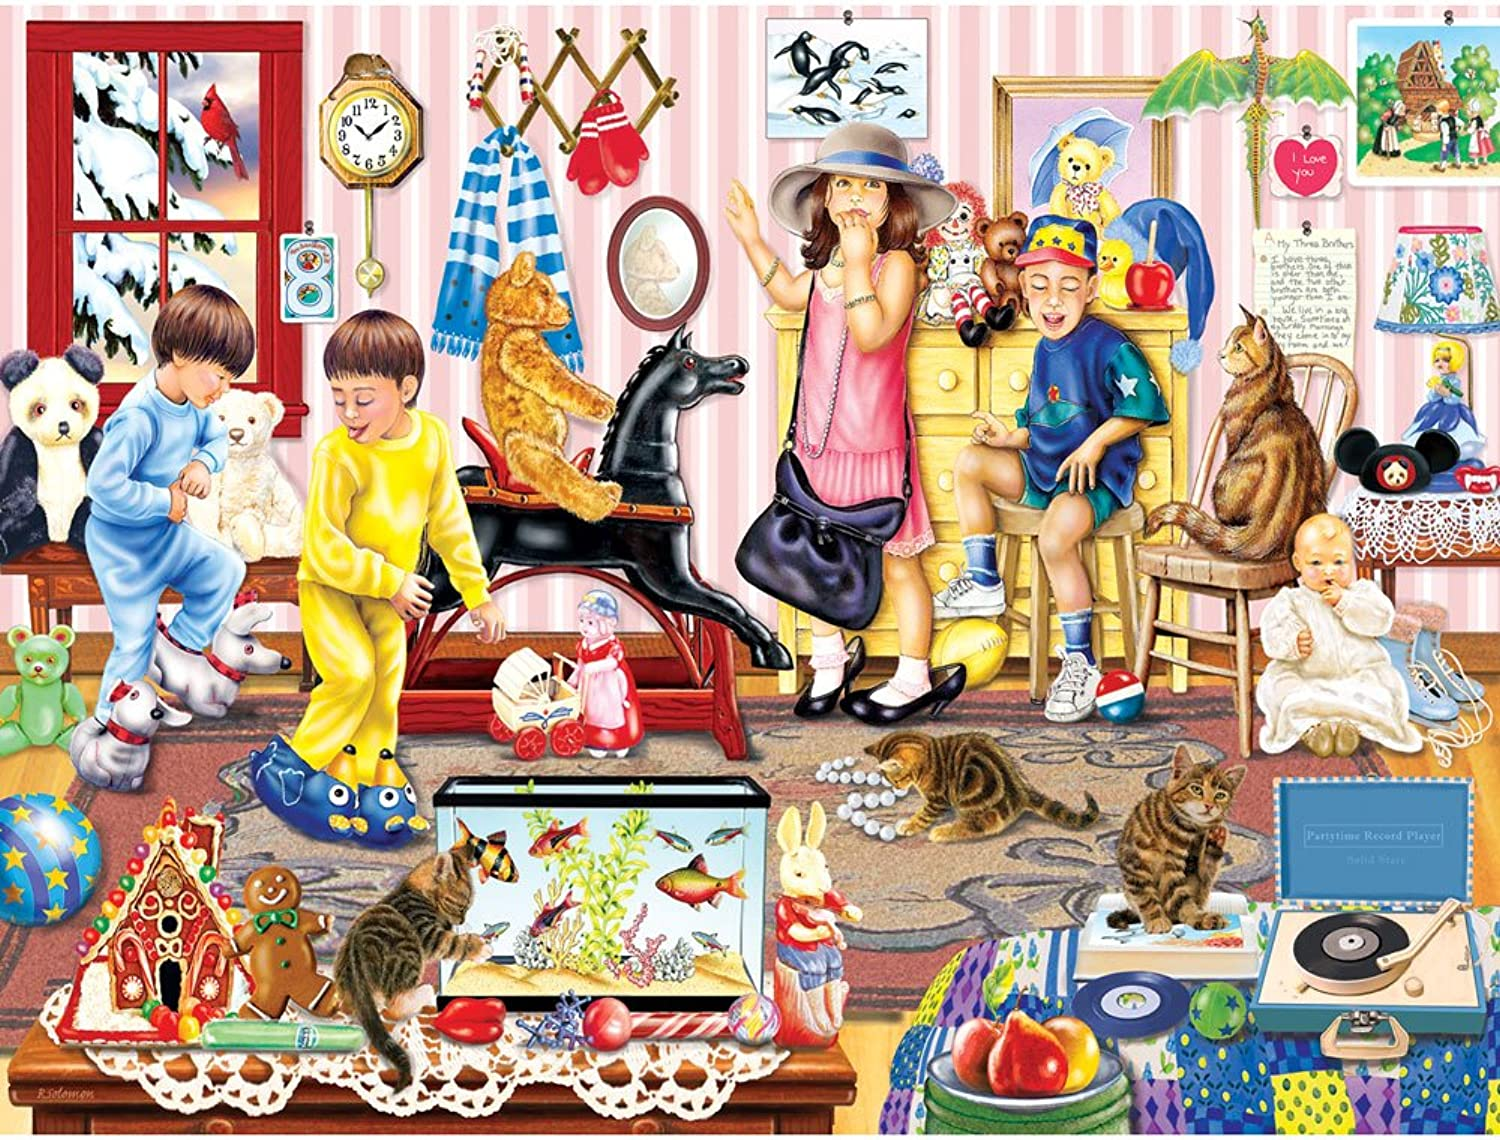 Bits and PiecesSaturday Morning in Sissy's Room  300 Piece Jigsaw Puzzle by Bits and Pieces